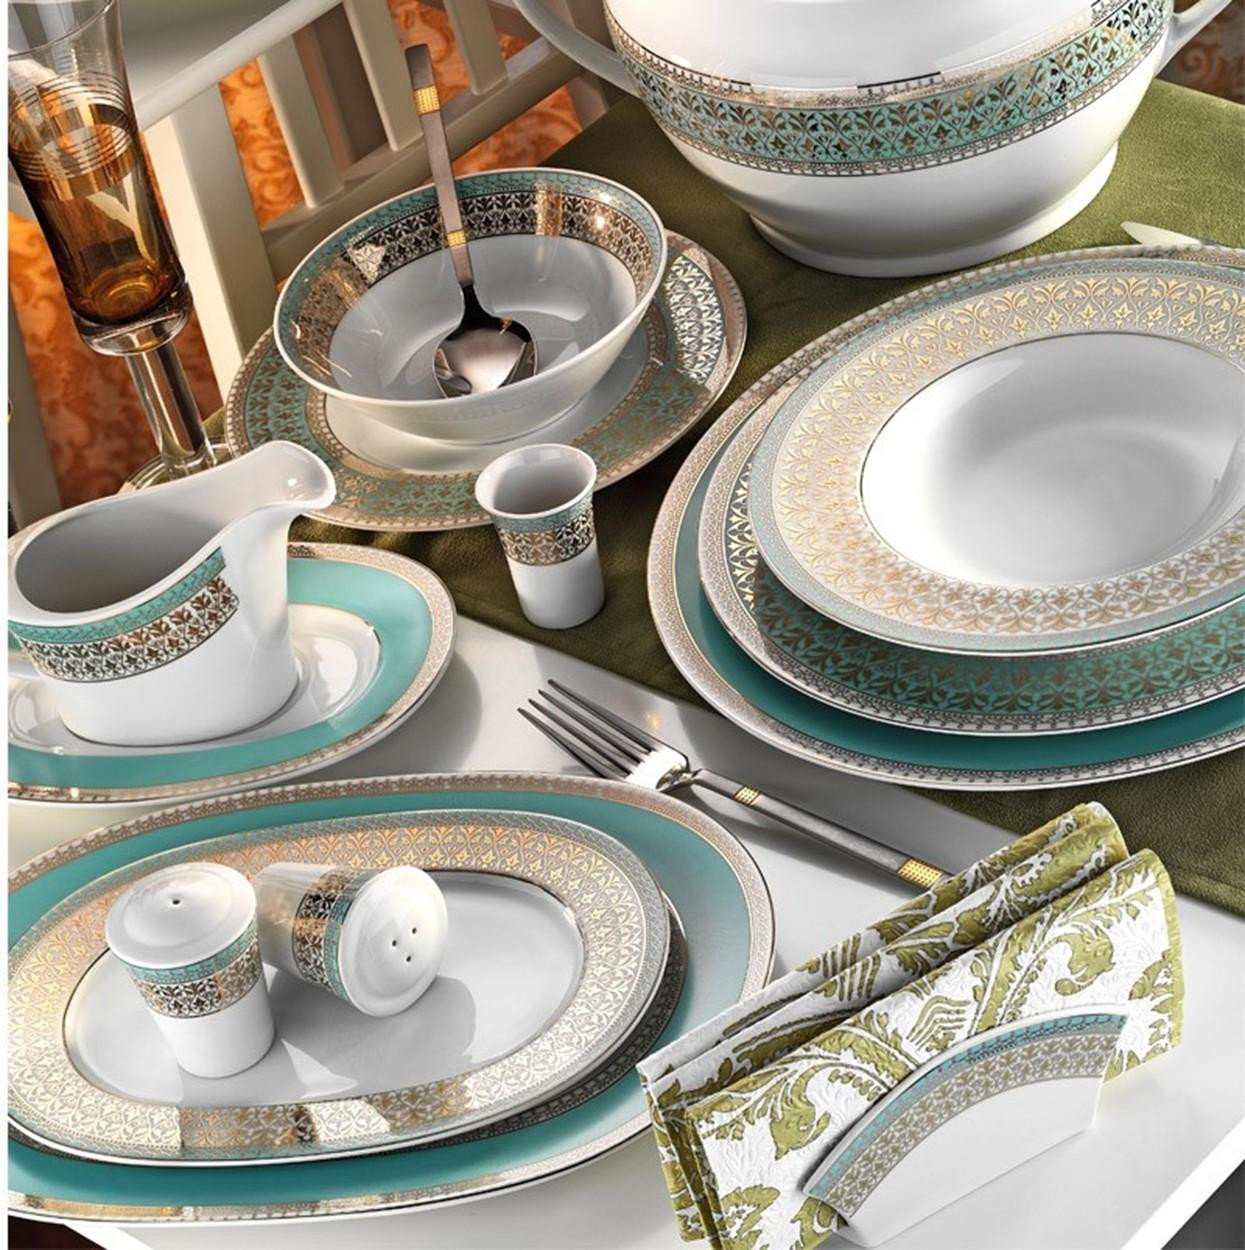 Kutahya Porselen LEONBERG 97 Pieces 7798 Patterned Dinnerware Set